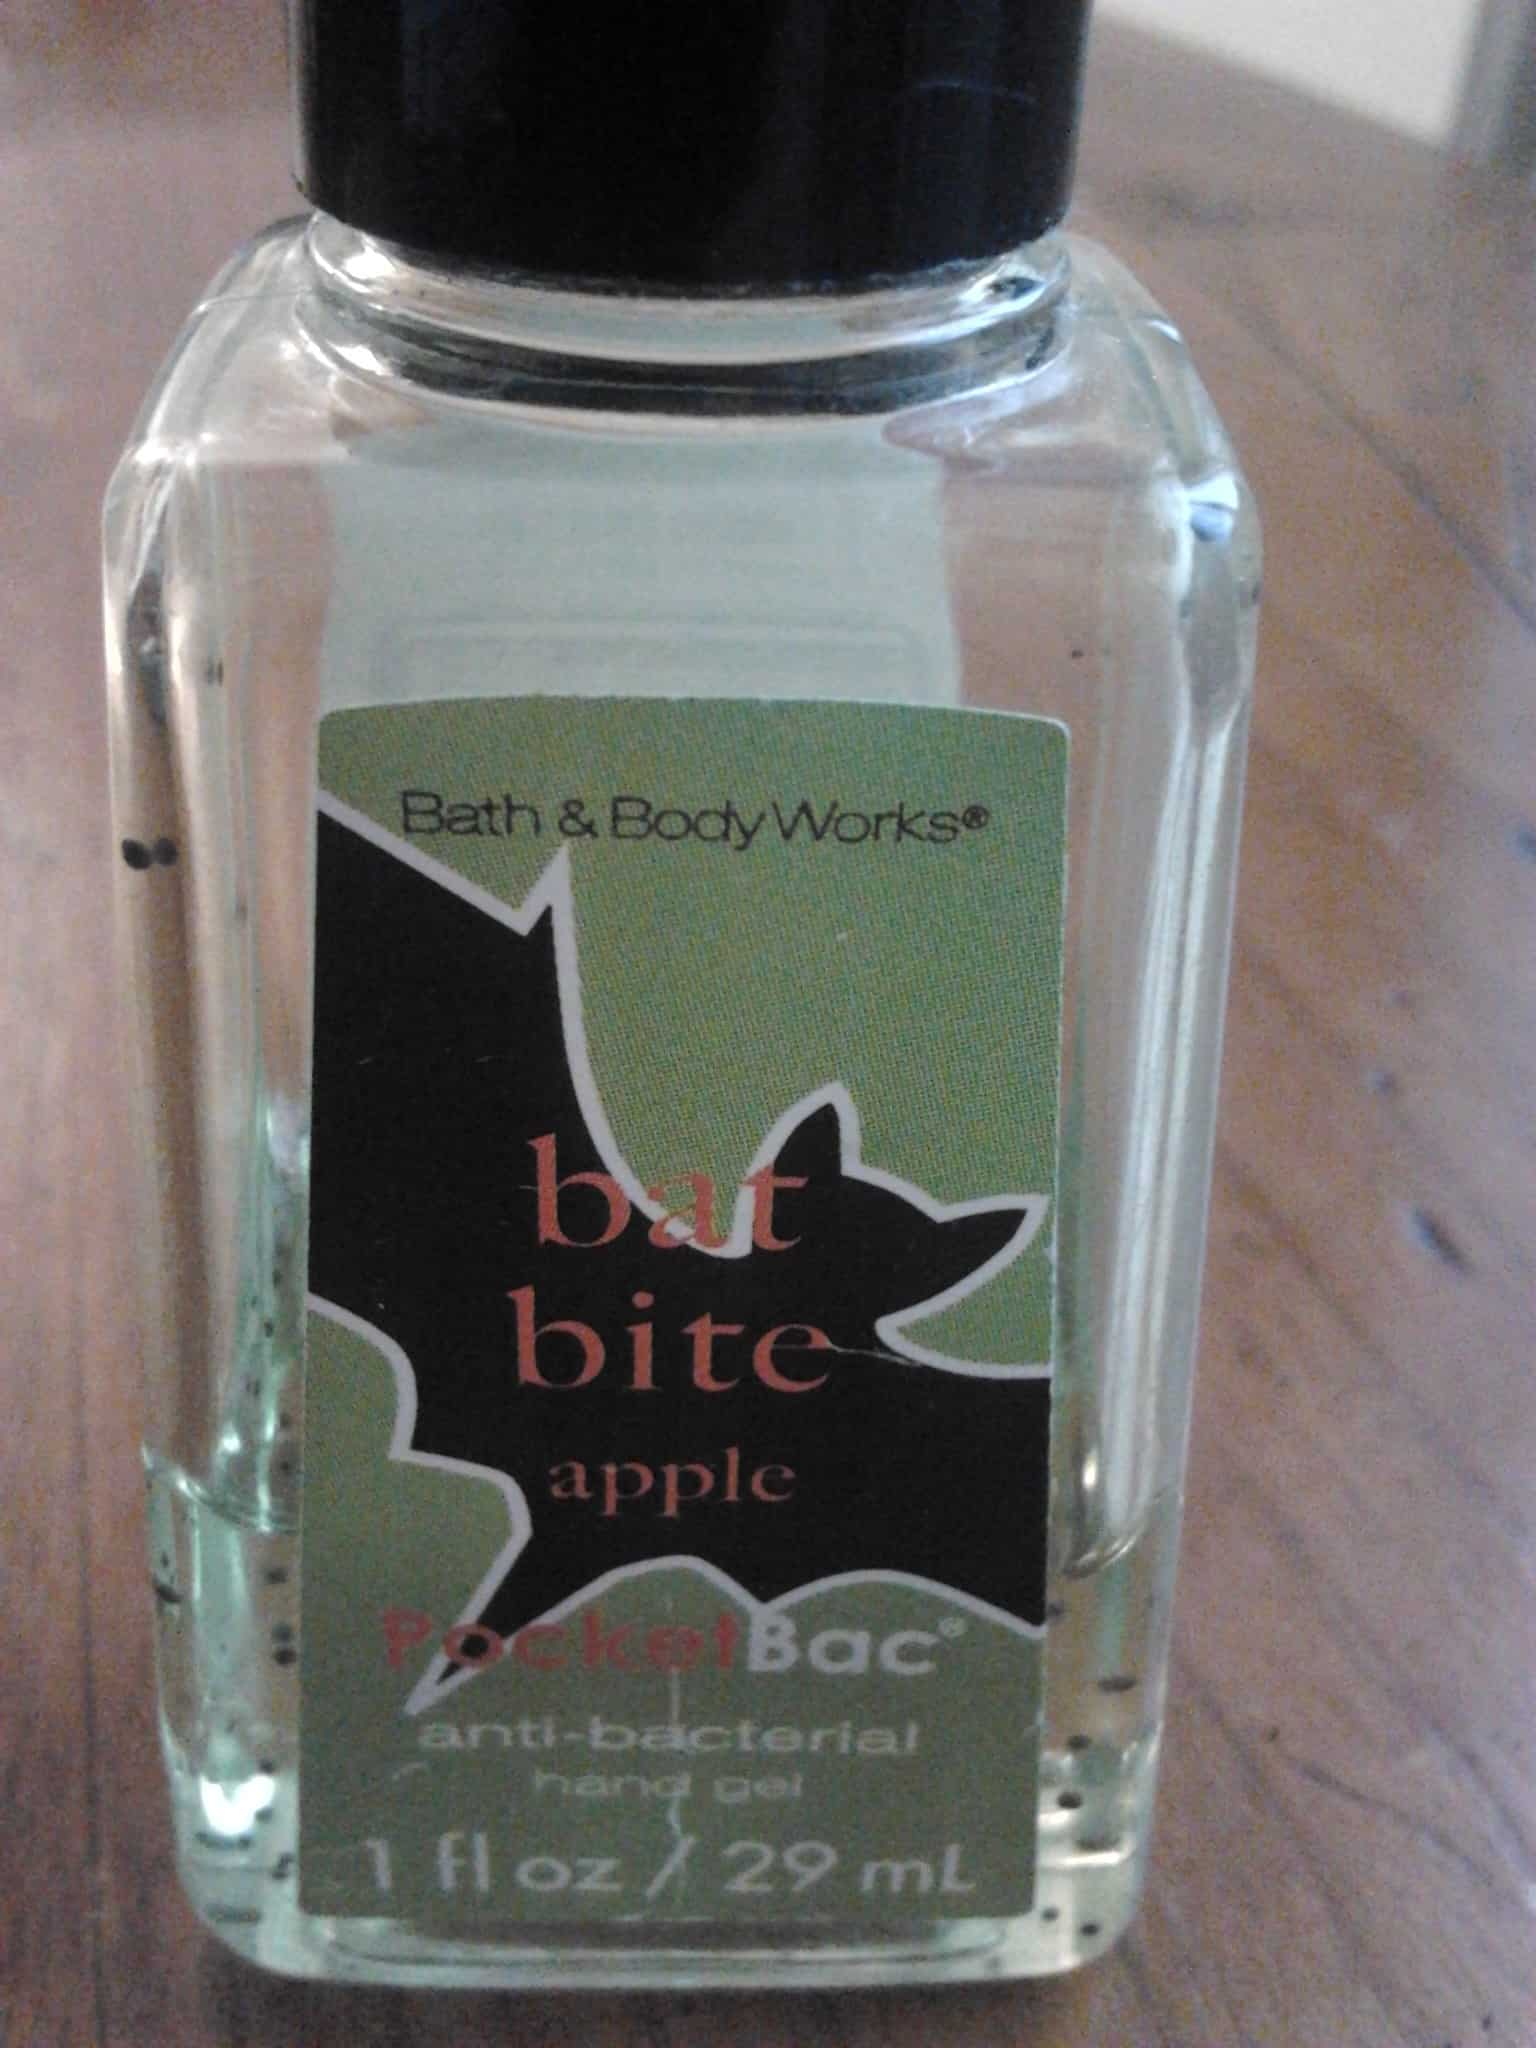 Bath and Body Works Bat Bite PocketBac